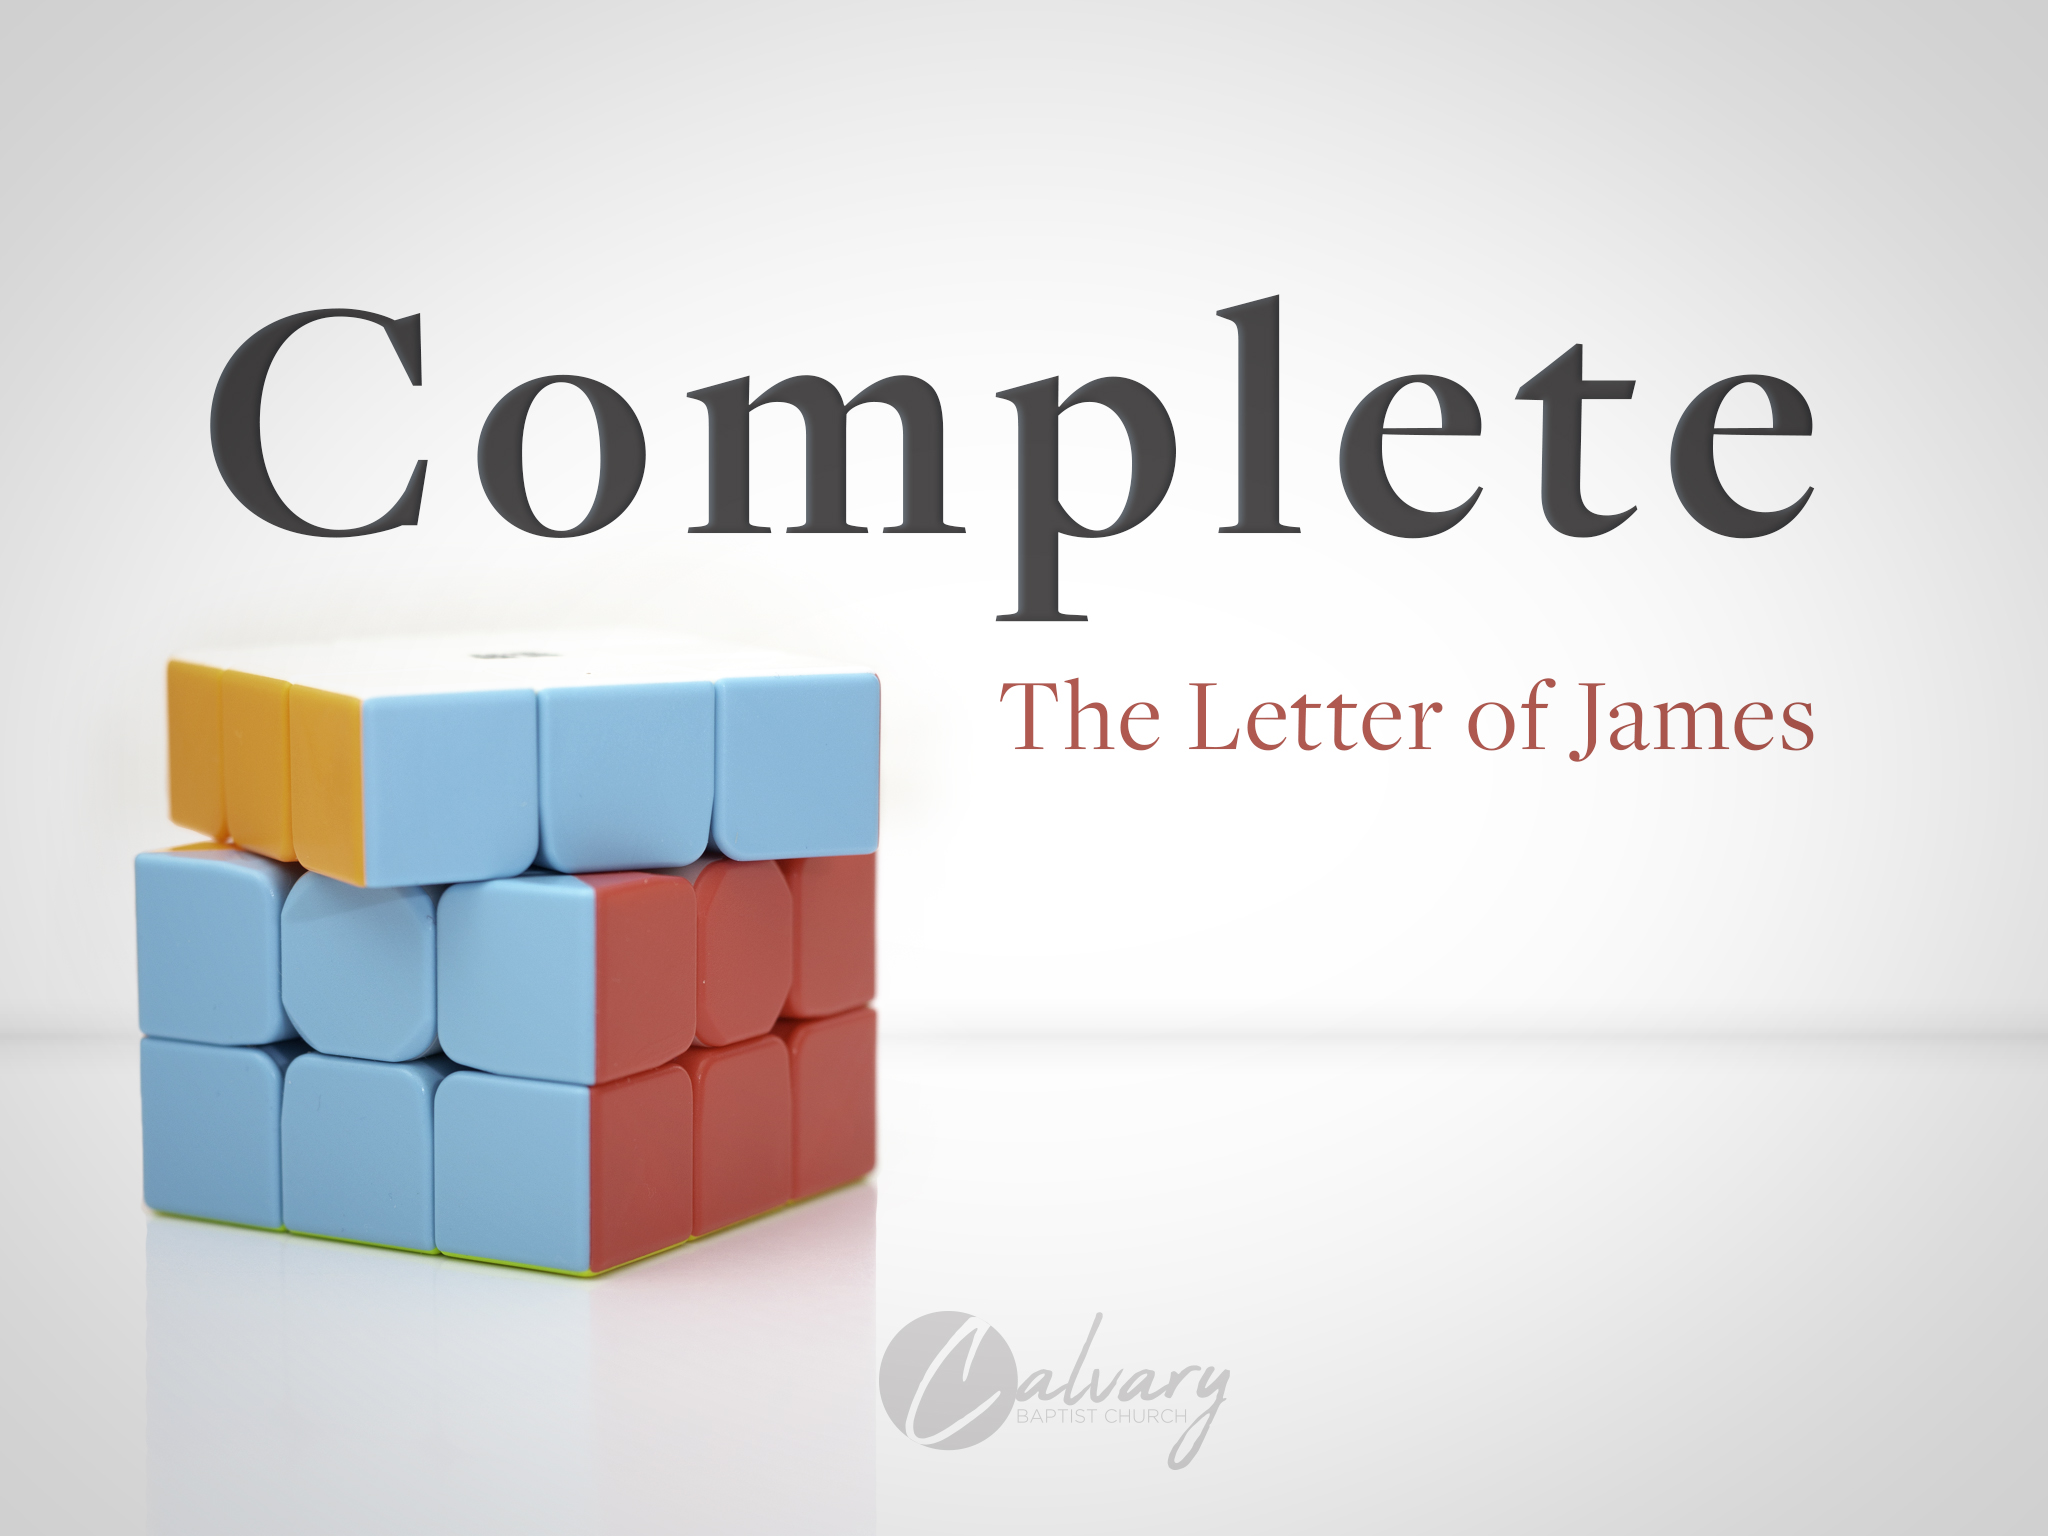 Complete: The Letter of James - Looking to grow to full maturity in Christ? Or just wondering if, in a world full of suffering, Jesus' ways are really as good as he claims they are? The letter of James was written to growing Christians in hard times to sand off their rough edges and grow them to full, fruit-bearing maturity in following Jesus. It can do the same for you.